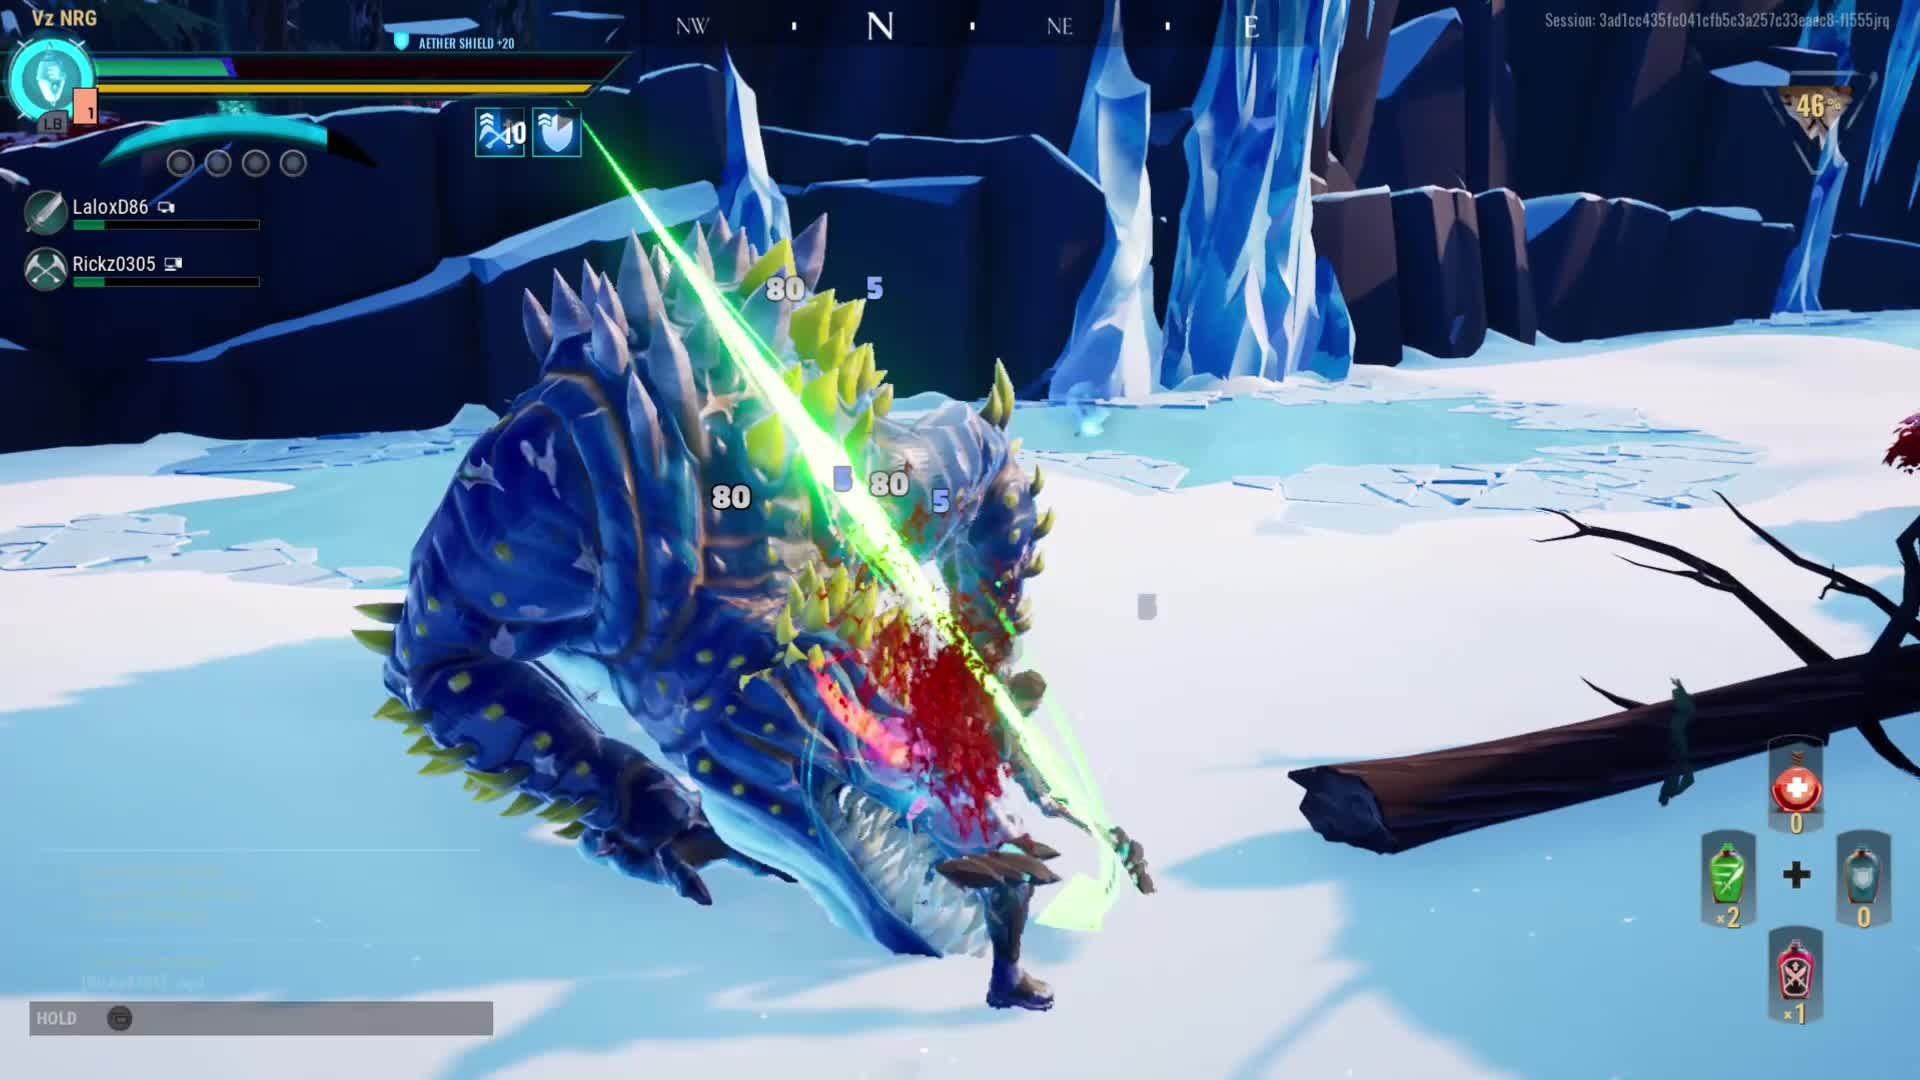 Dauntless: General - That's one way to finish a fight. video cover image 0